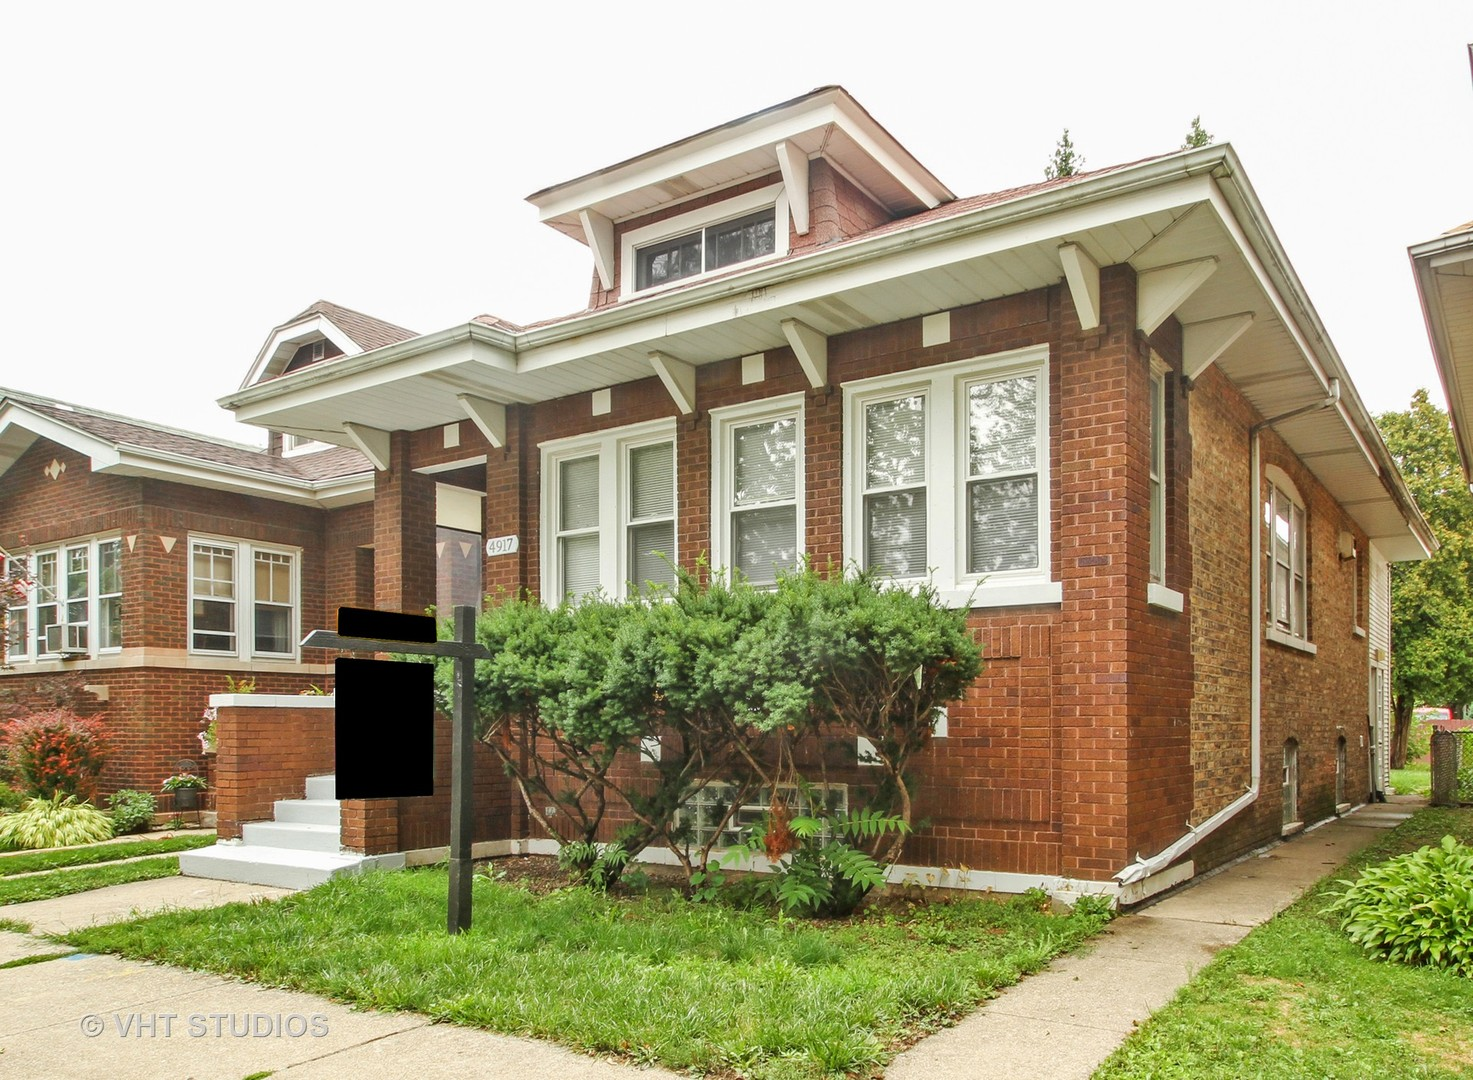 Property for sale at 4917 North Kostner Avenue, Chicago-CHI - Albany Park,  Il 60630